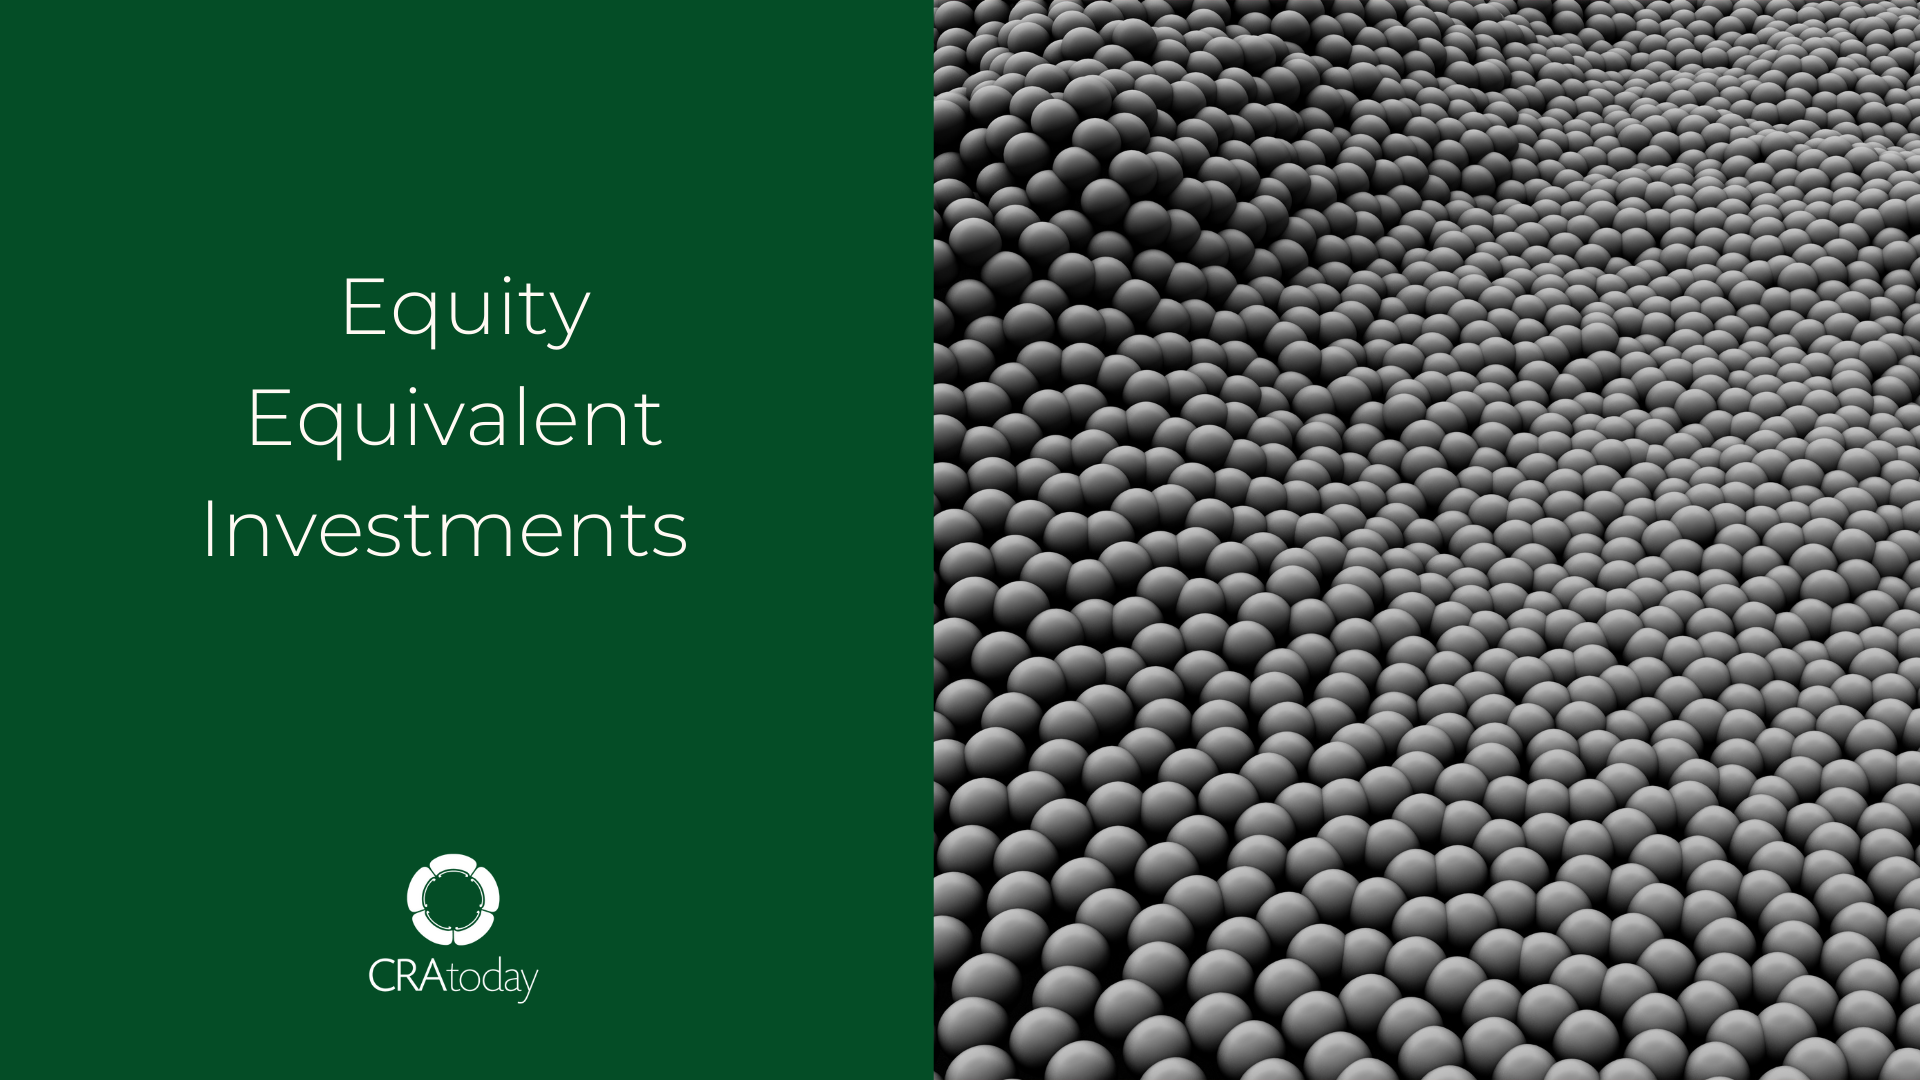 Equity Equivalent Investments